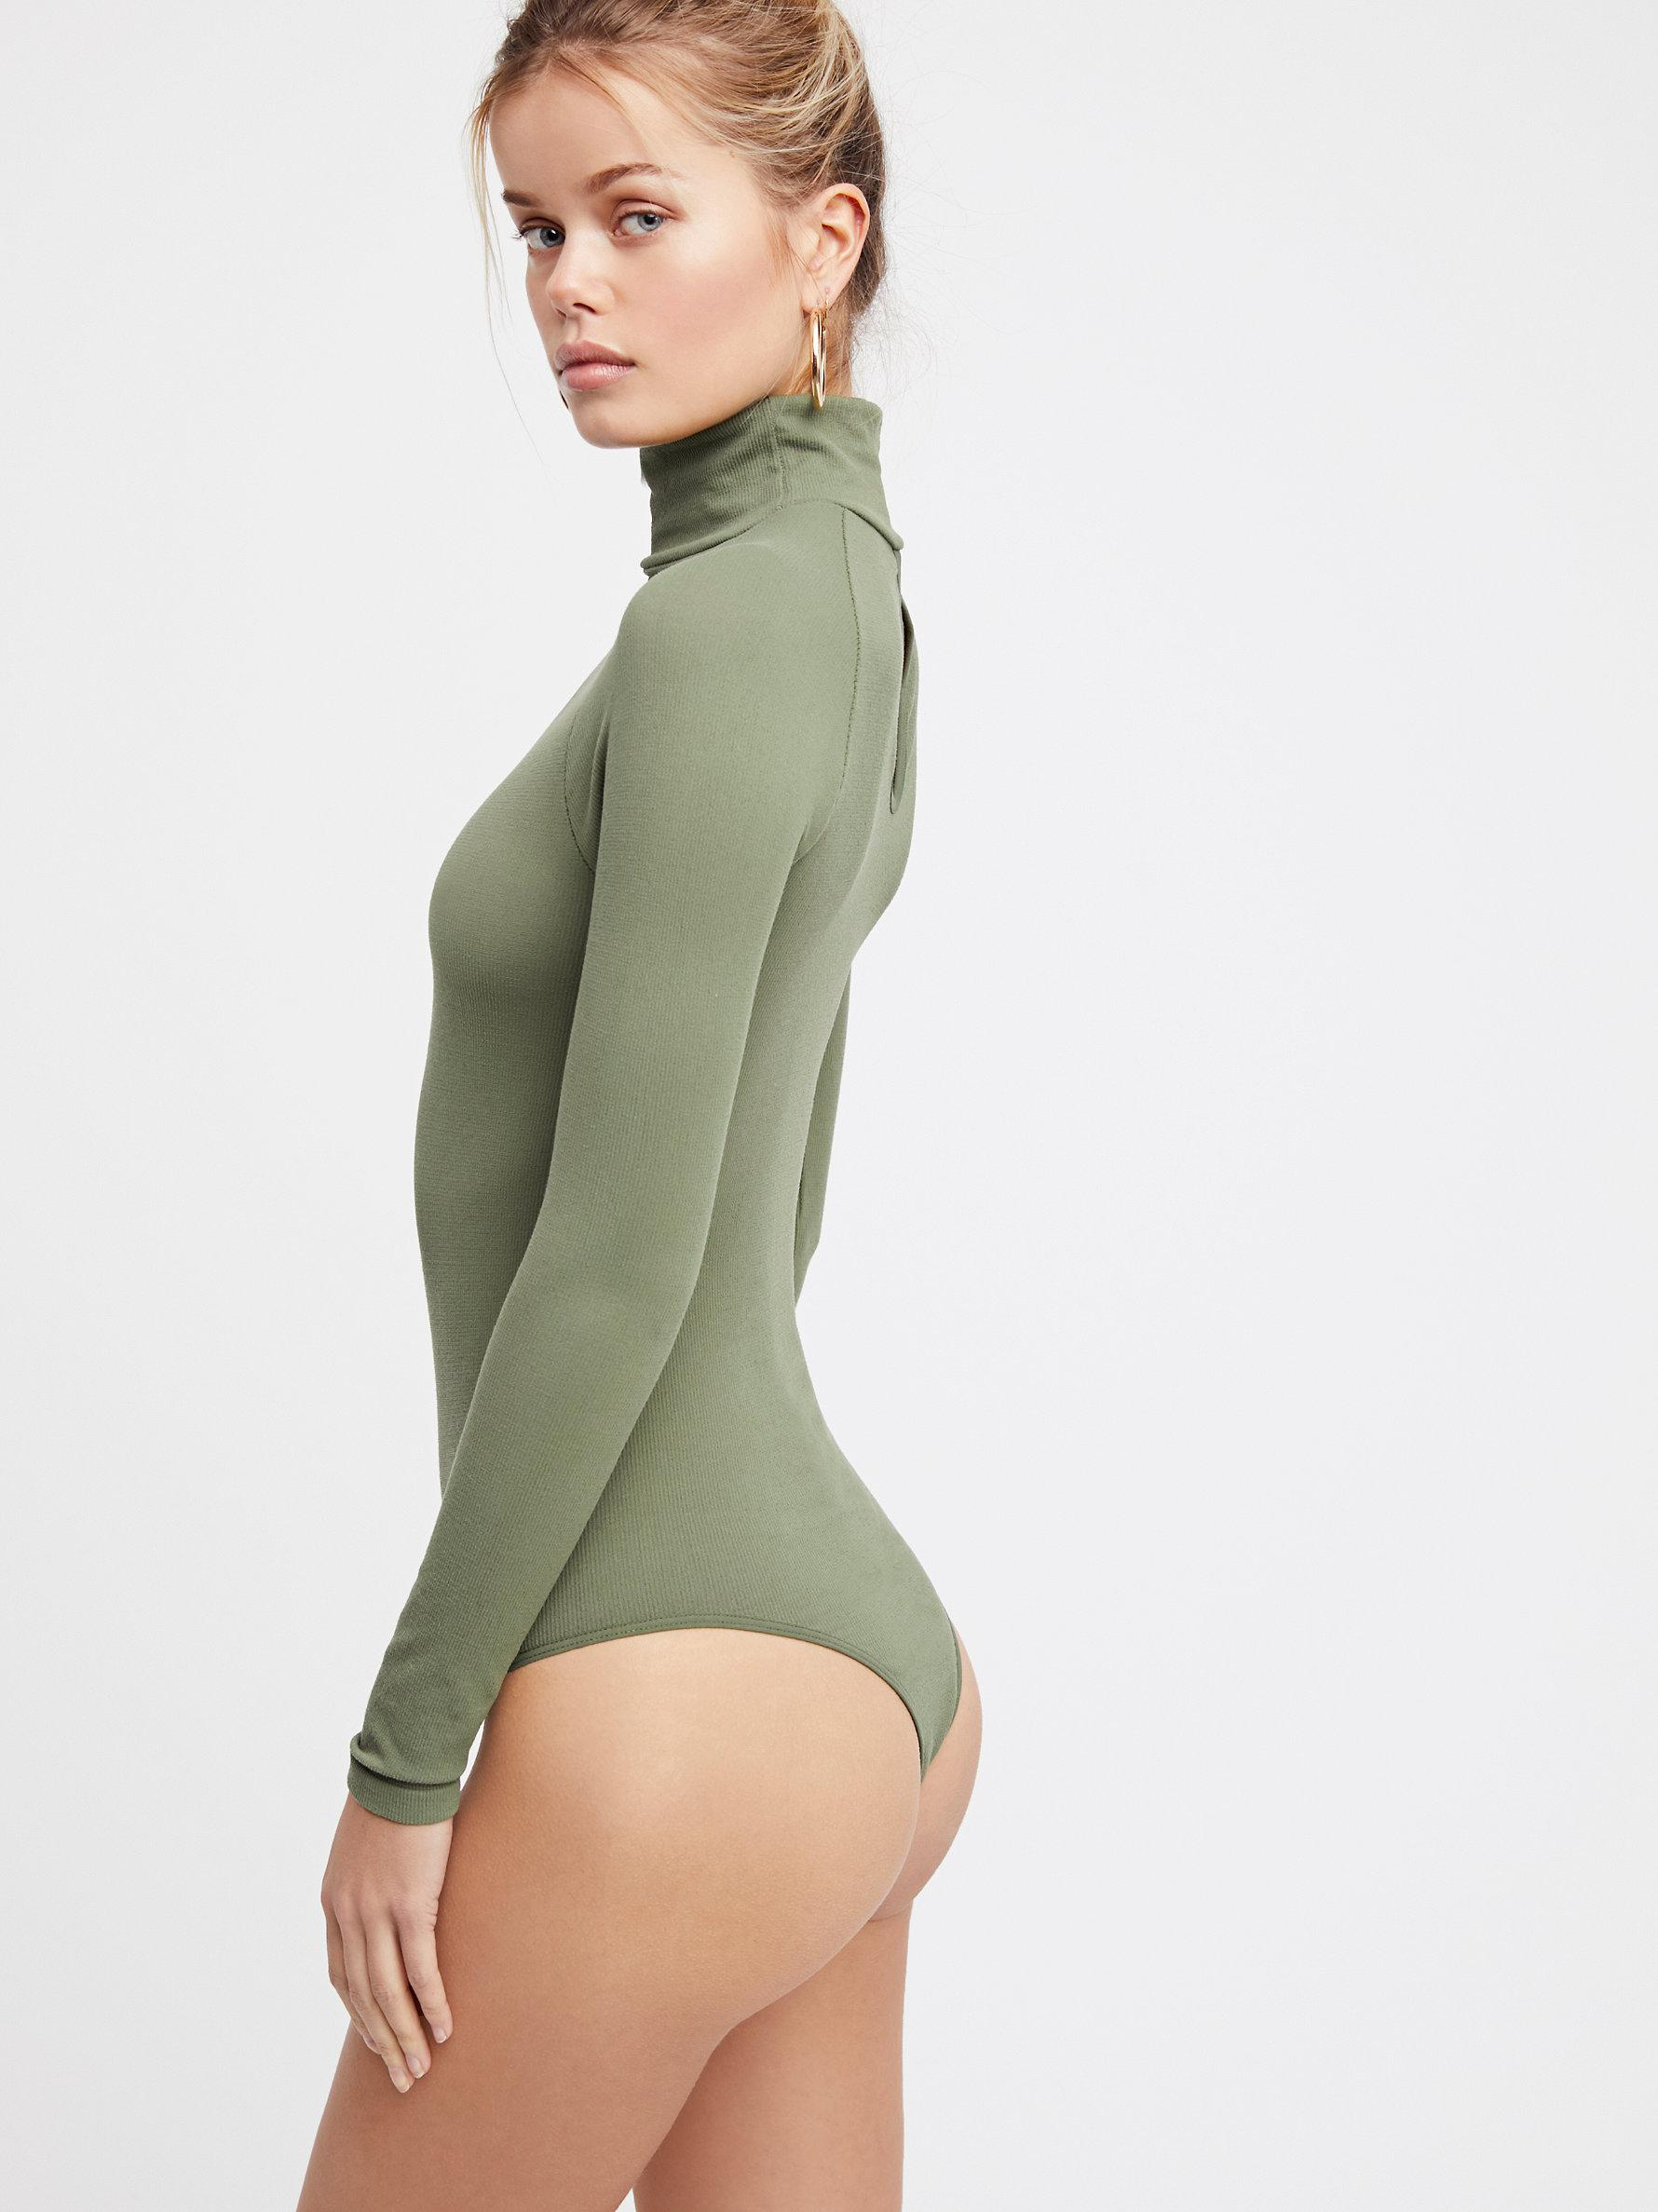 New-Free-People-Womens-Ribbed-Long-Sleeve-Seamless-Turtleneck-Bodysuit-Top-48 thumbnail 55